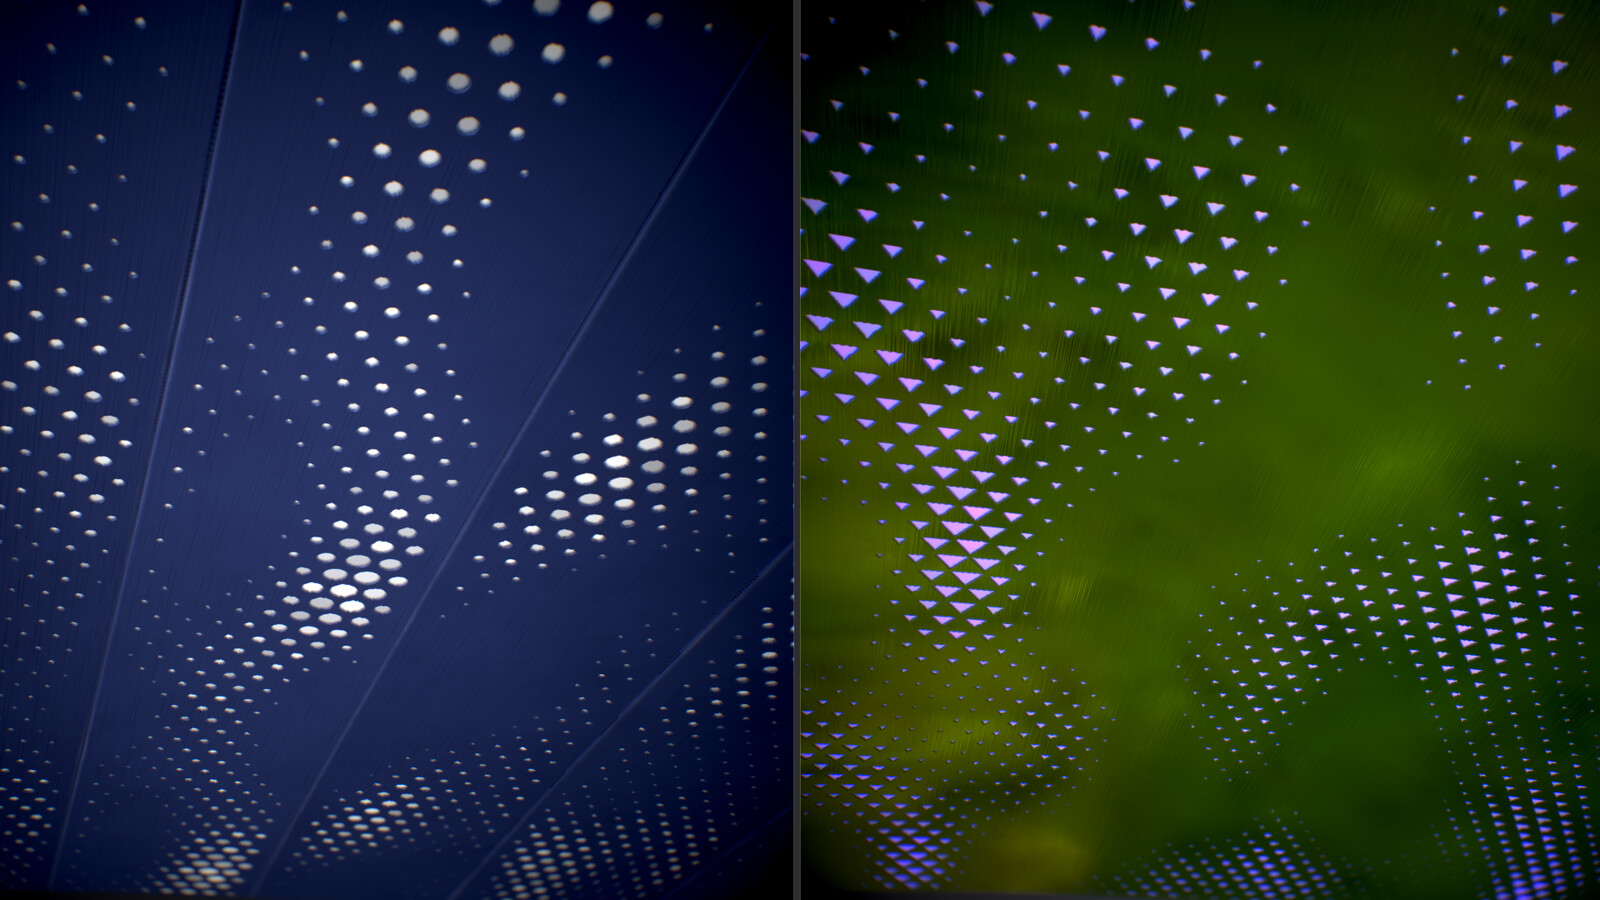 Another ceiling panel thats both decorative and ambient lighting. Works for walls too.